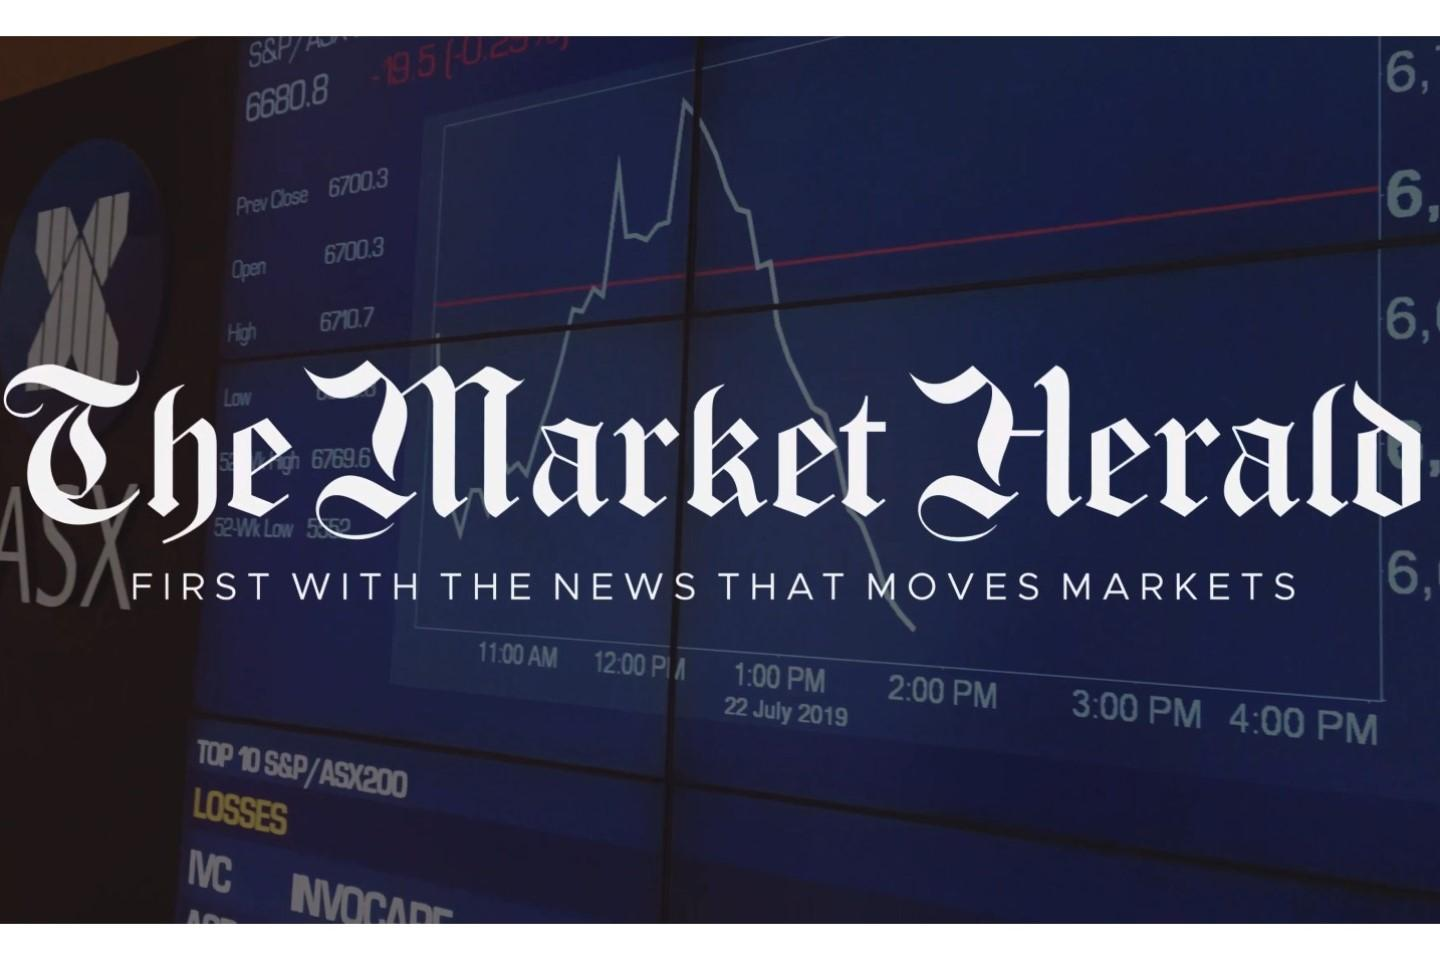 Market Herald invests $13m in clients' shares